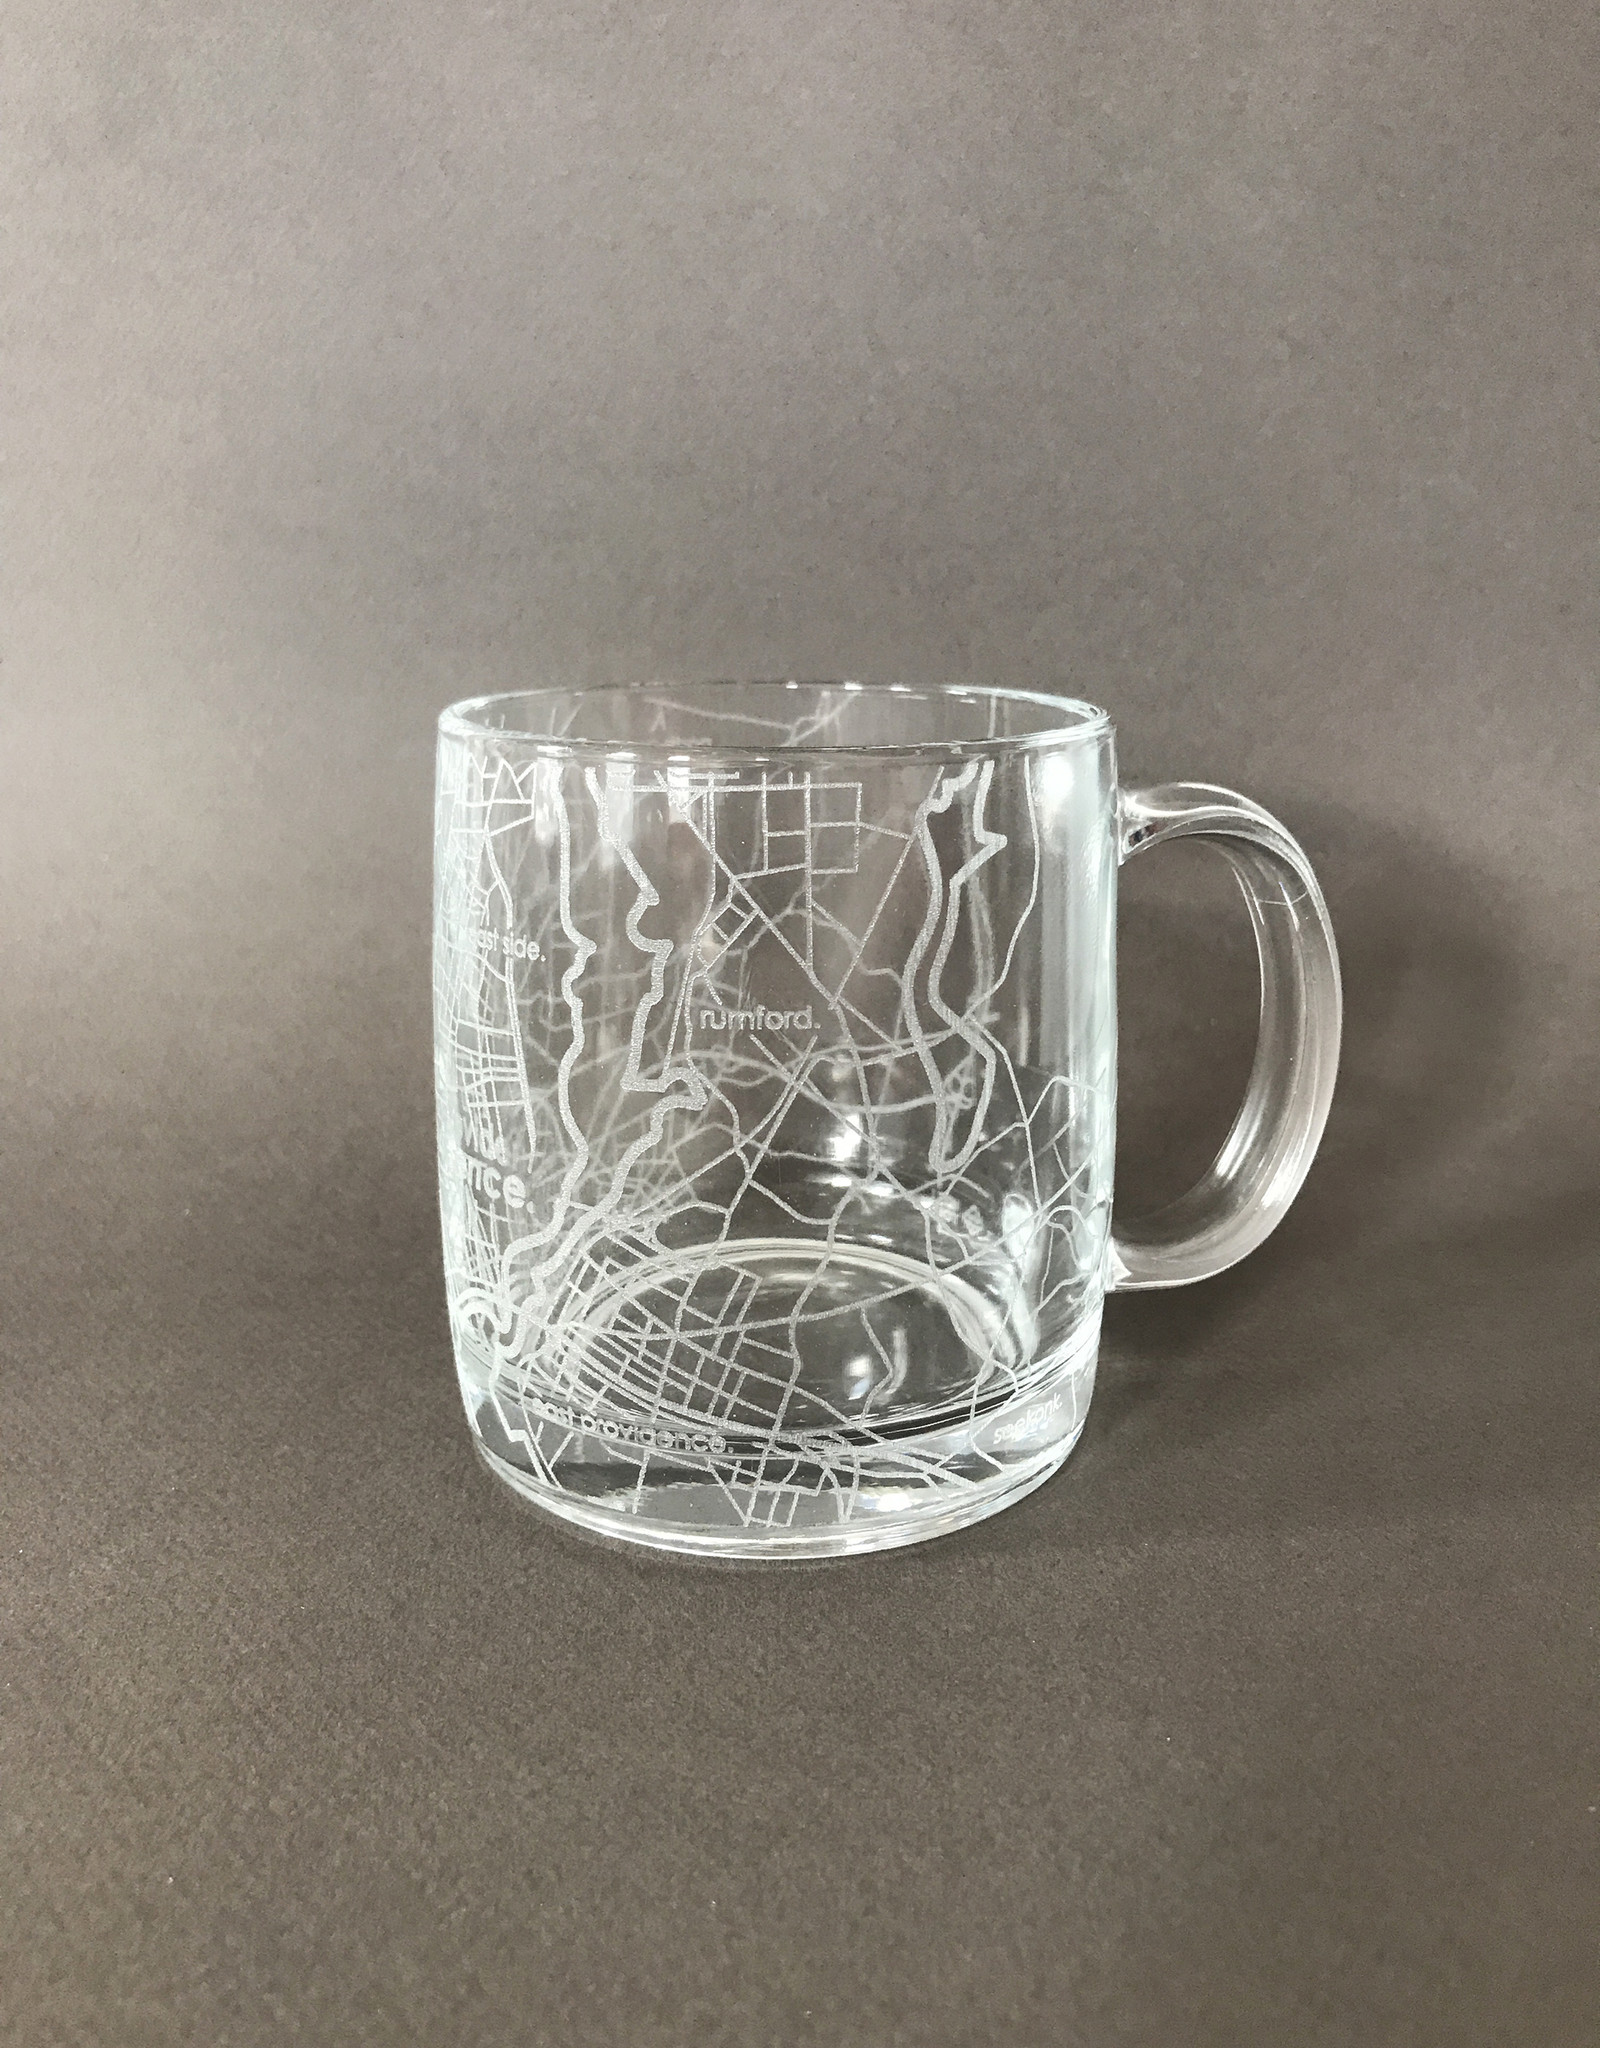 Well Told Well Told Hometown Providence Glass Handled Coffee Mug